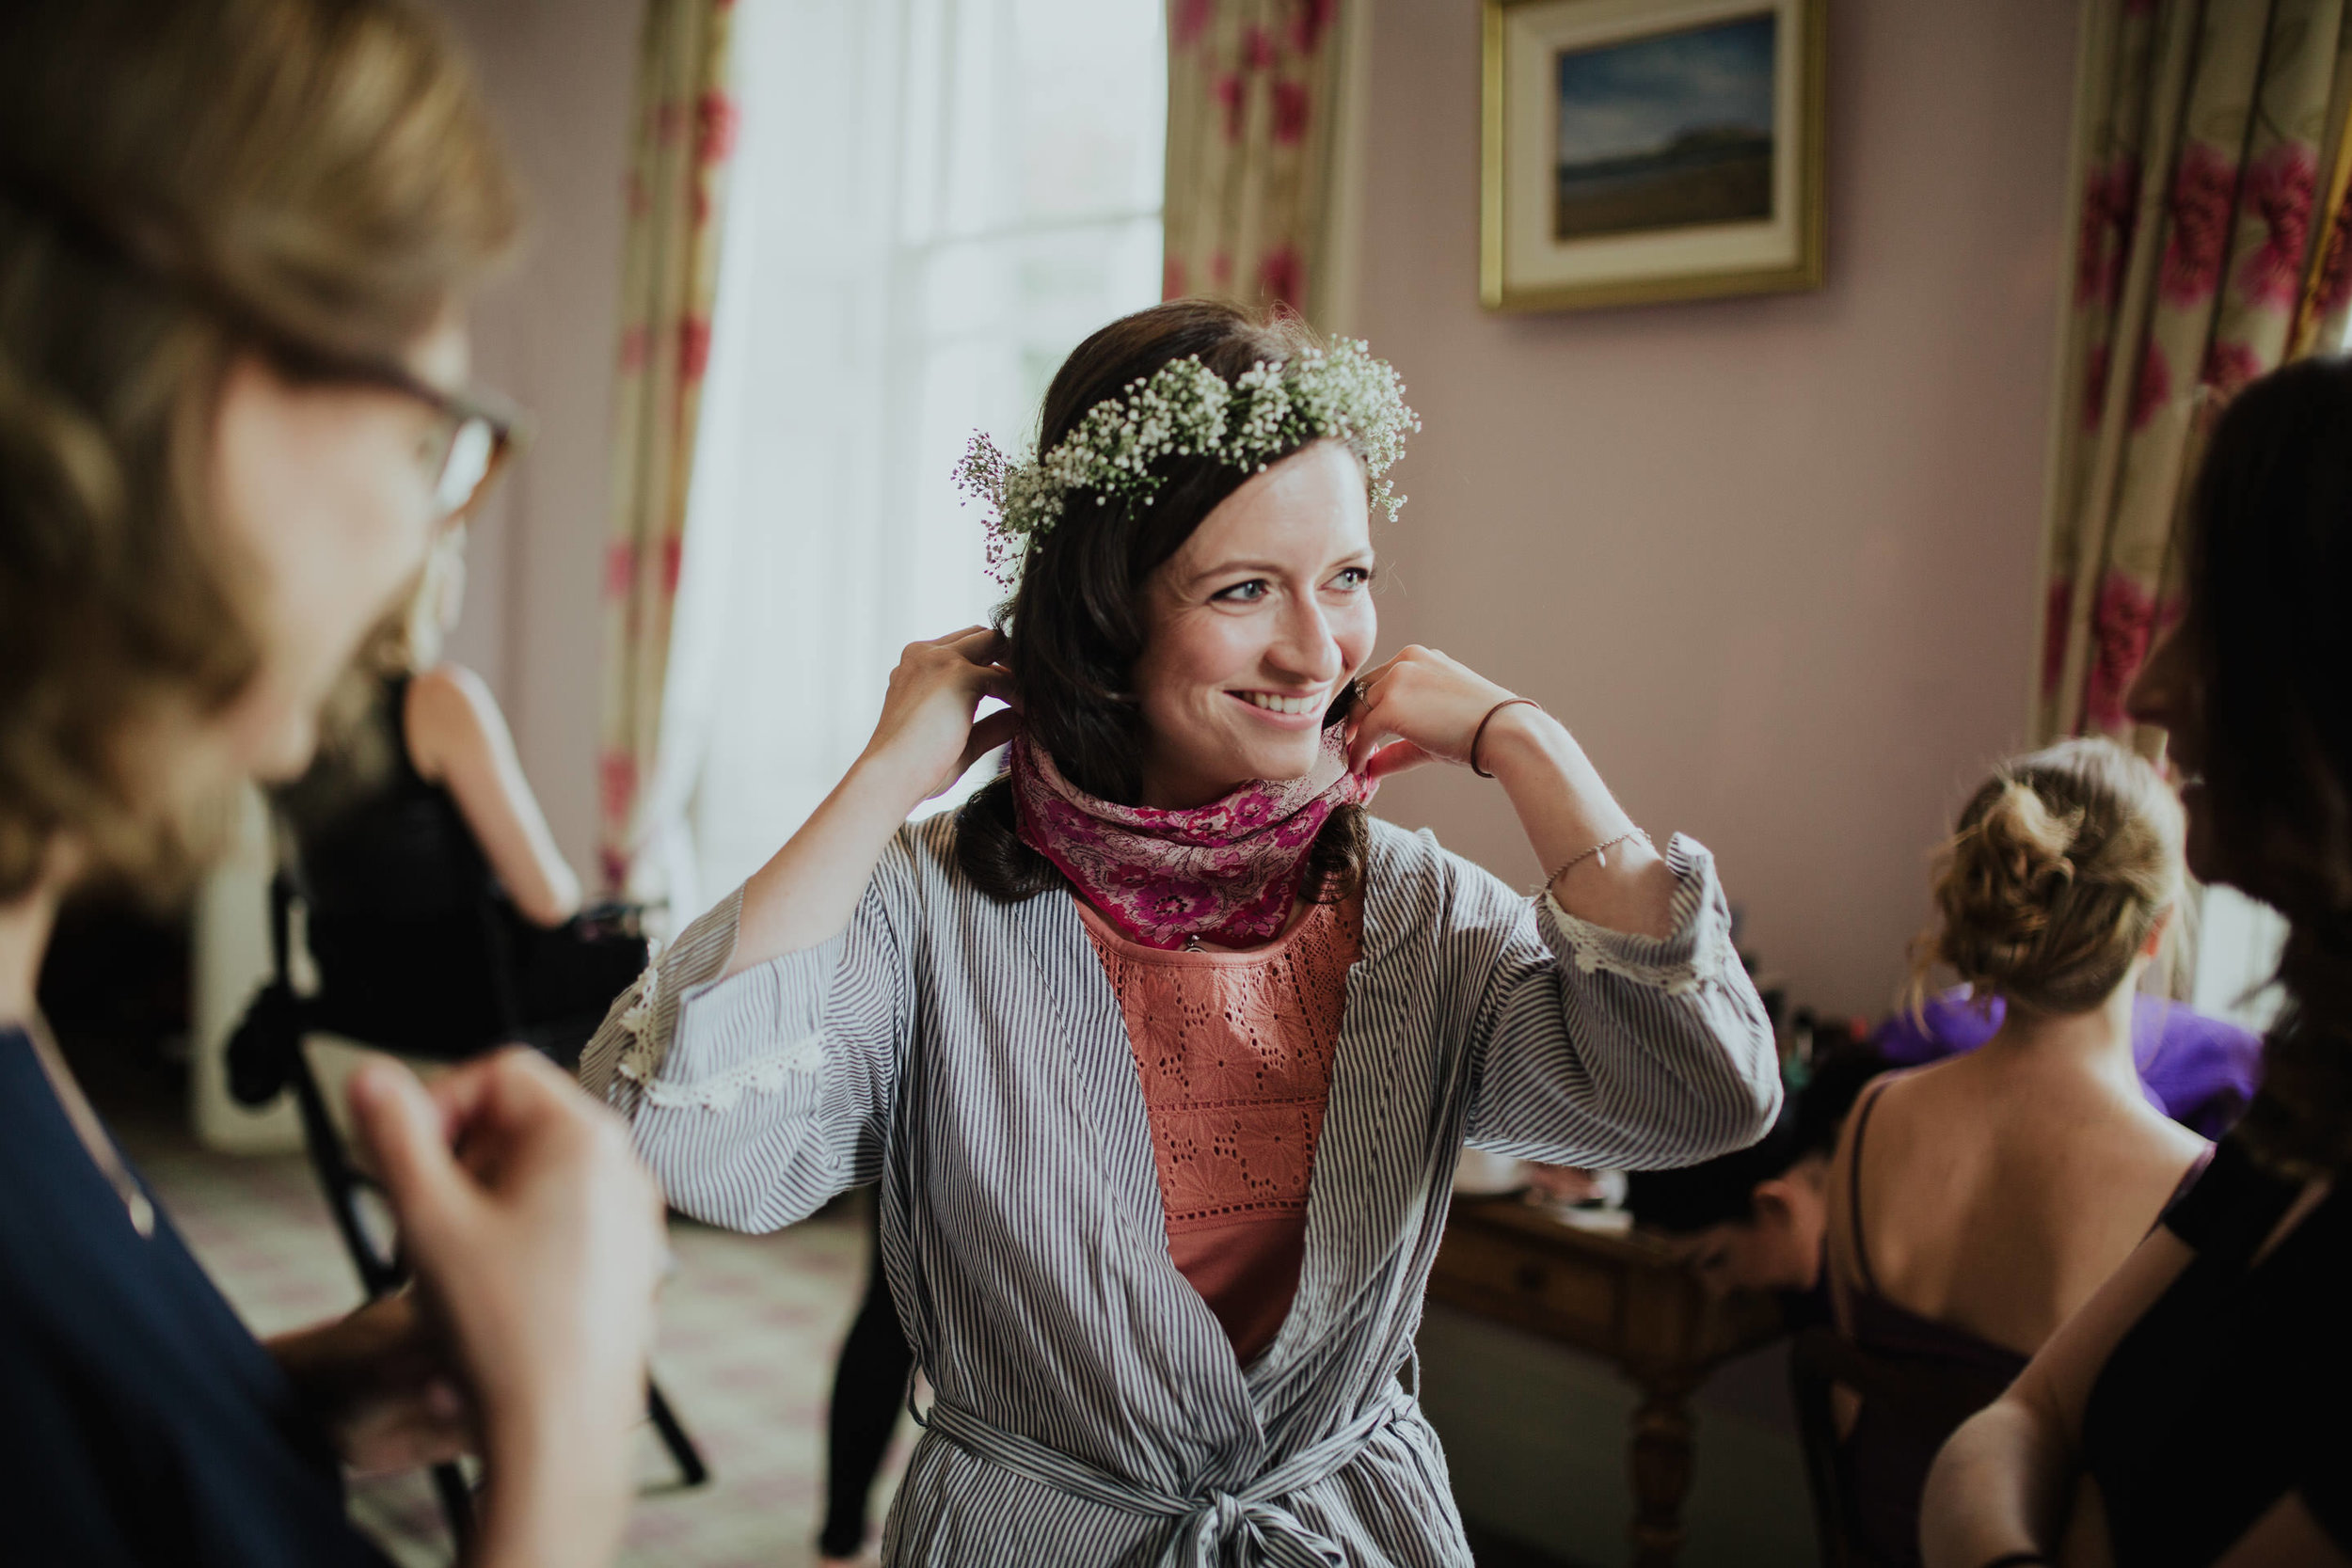 a+s_temple_house_sligo_wedding_livia_figueiredo_248.jpg